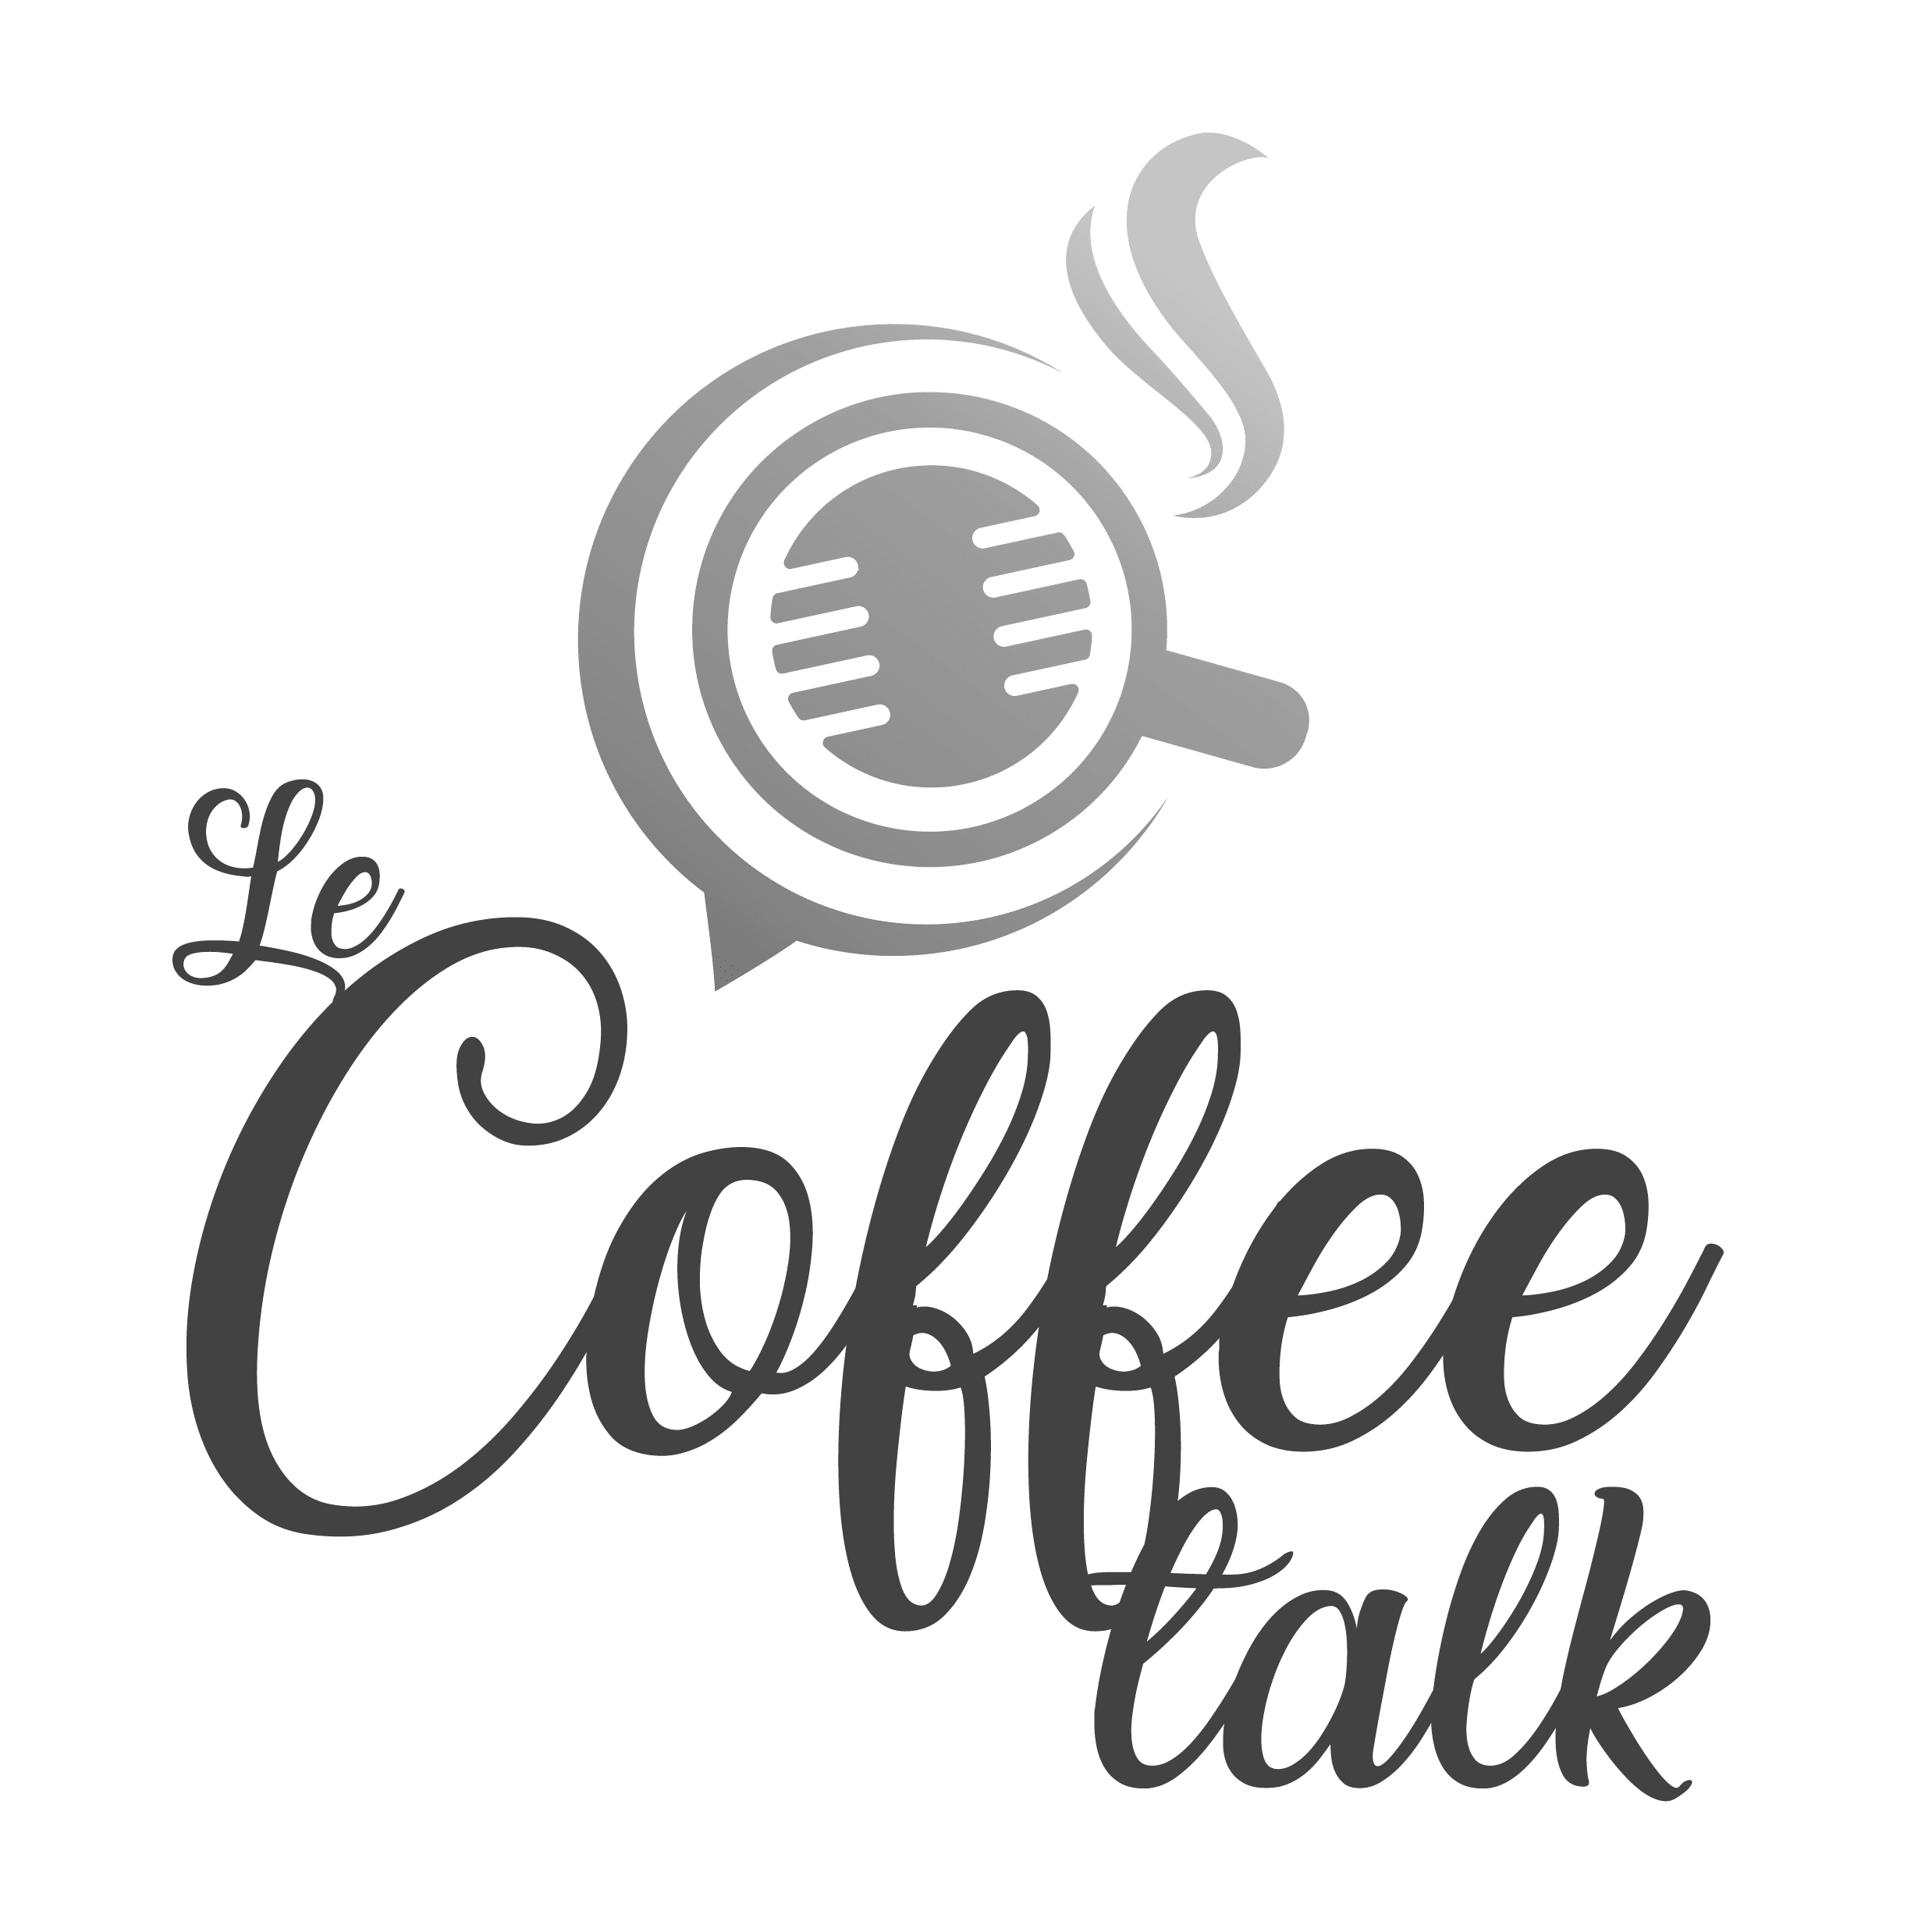 logo-coffeetalk-bnw